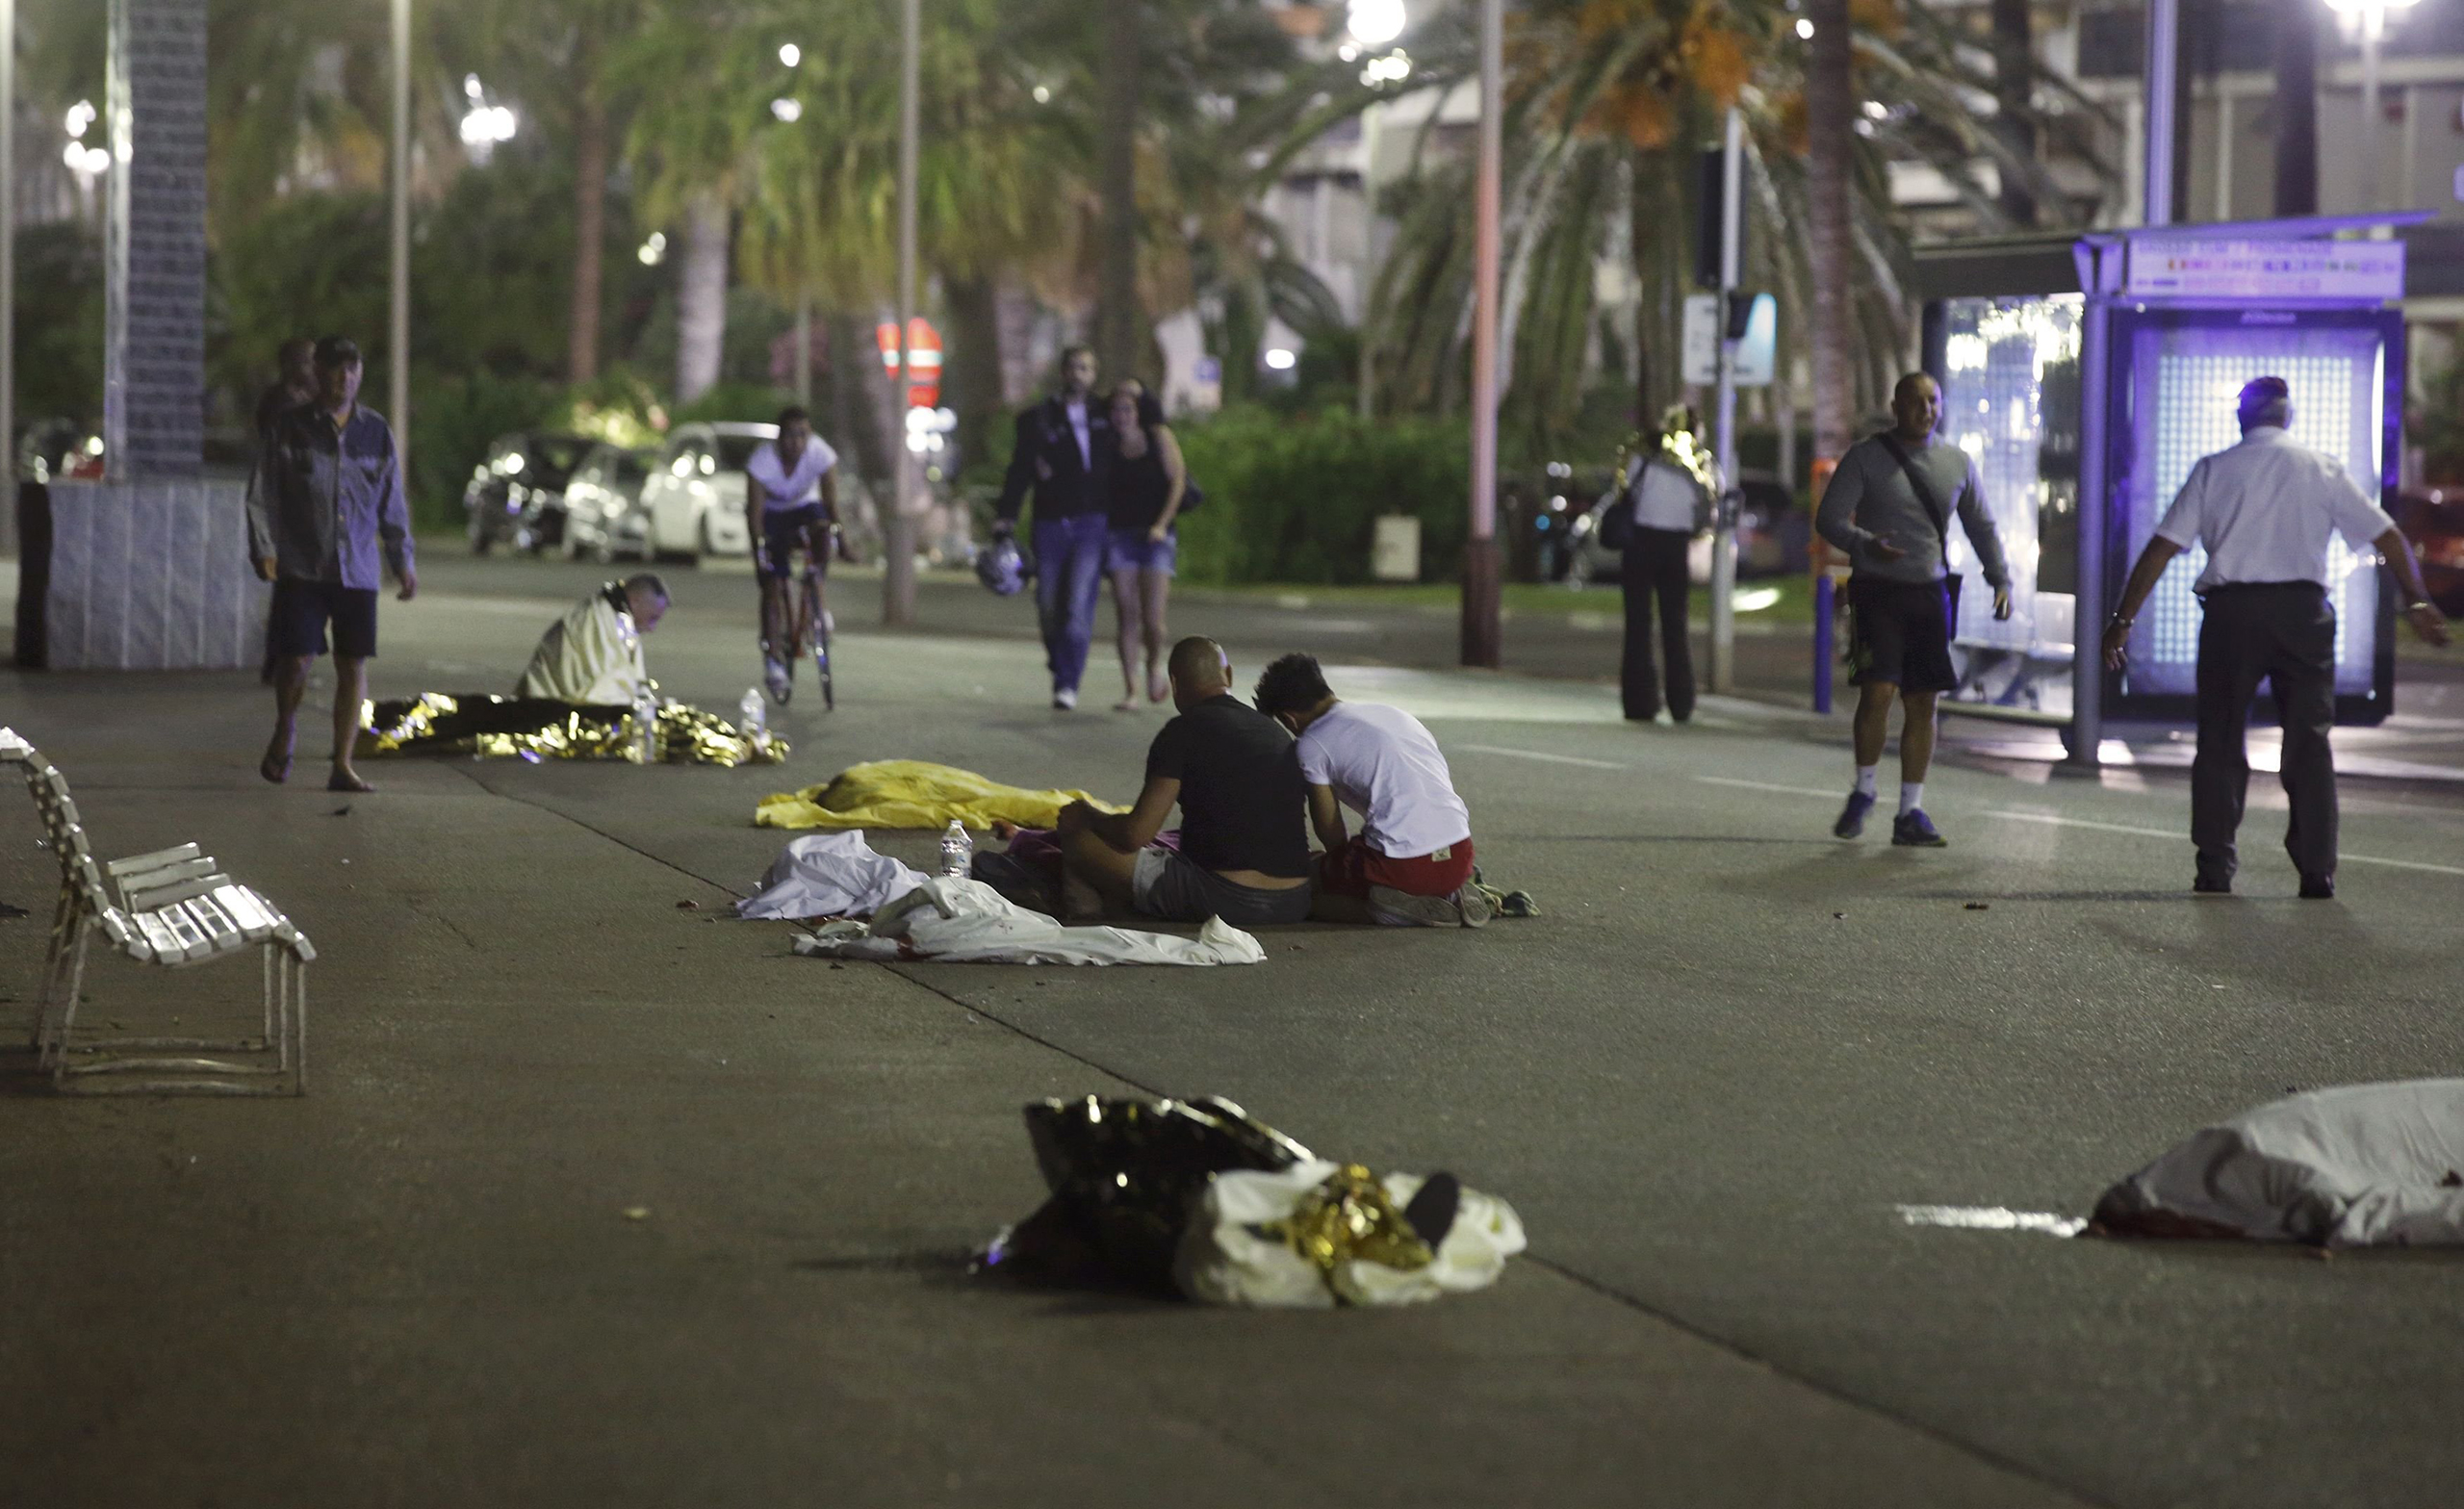 Bodies are seen on the ground on July 15, 2016, after at least 80 people were killed in Nice, France, when a truck ran into a crowd celebrating Bastille Day.